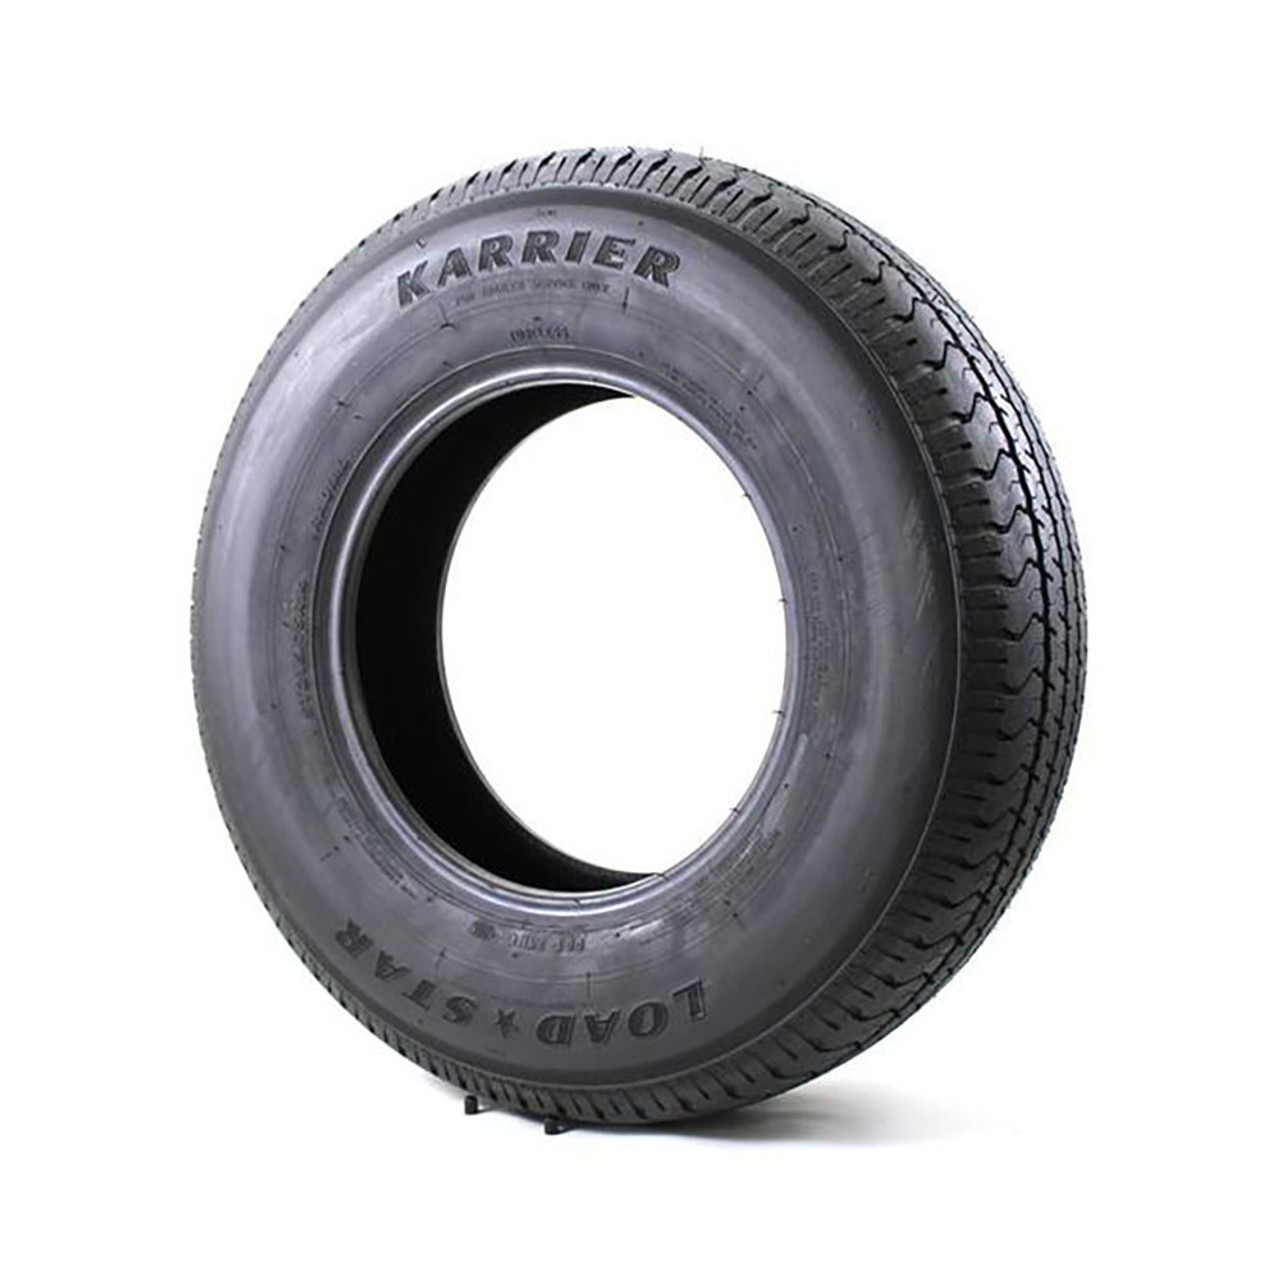 ST215/75R14 Load Range C Radial Trailer Tire - Kenda Loadstar